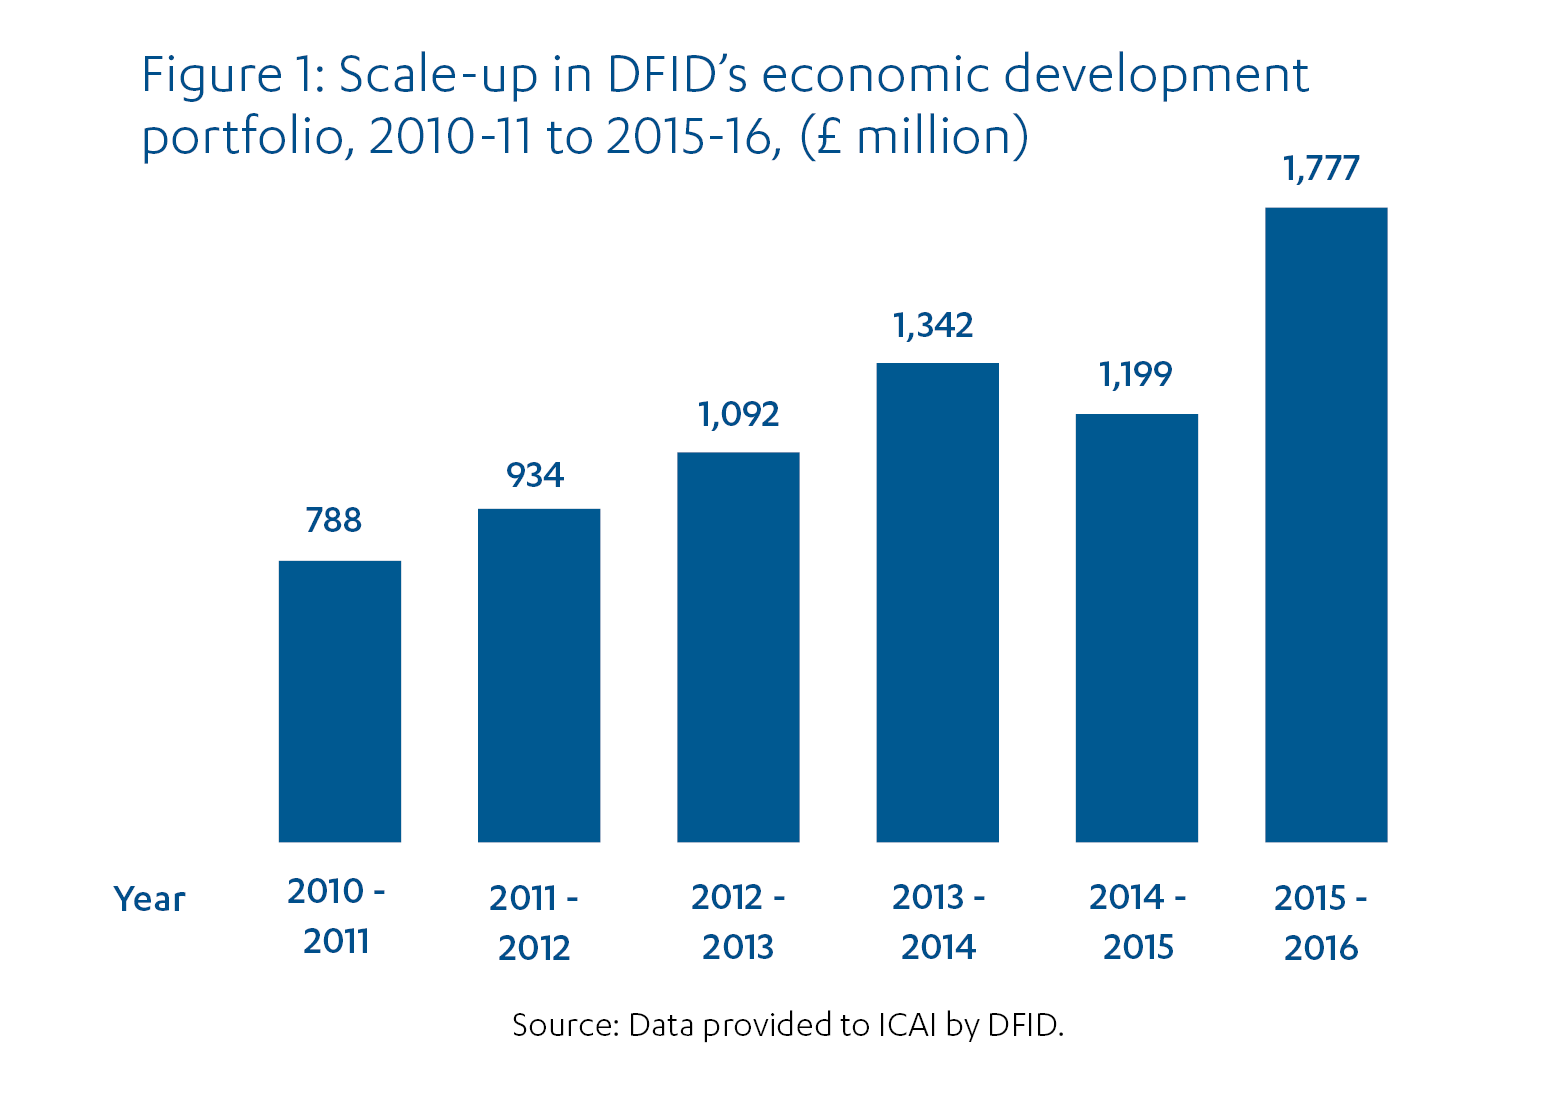 Bar chart showing increase in DFID's economic development portfolio from £788m in 2010-11 to £1,777m in 2015-16.